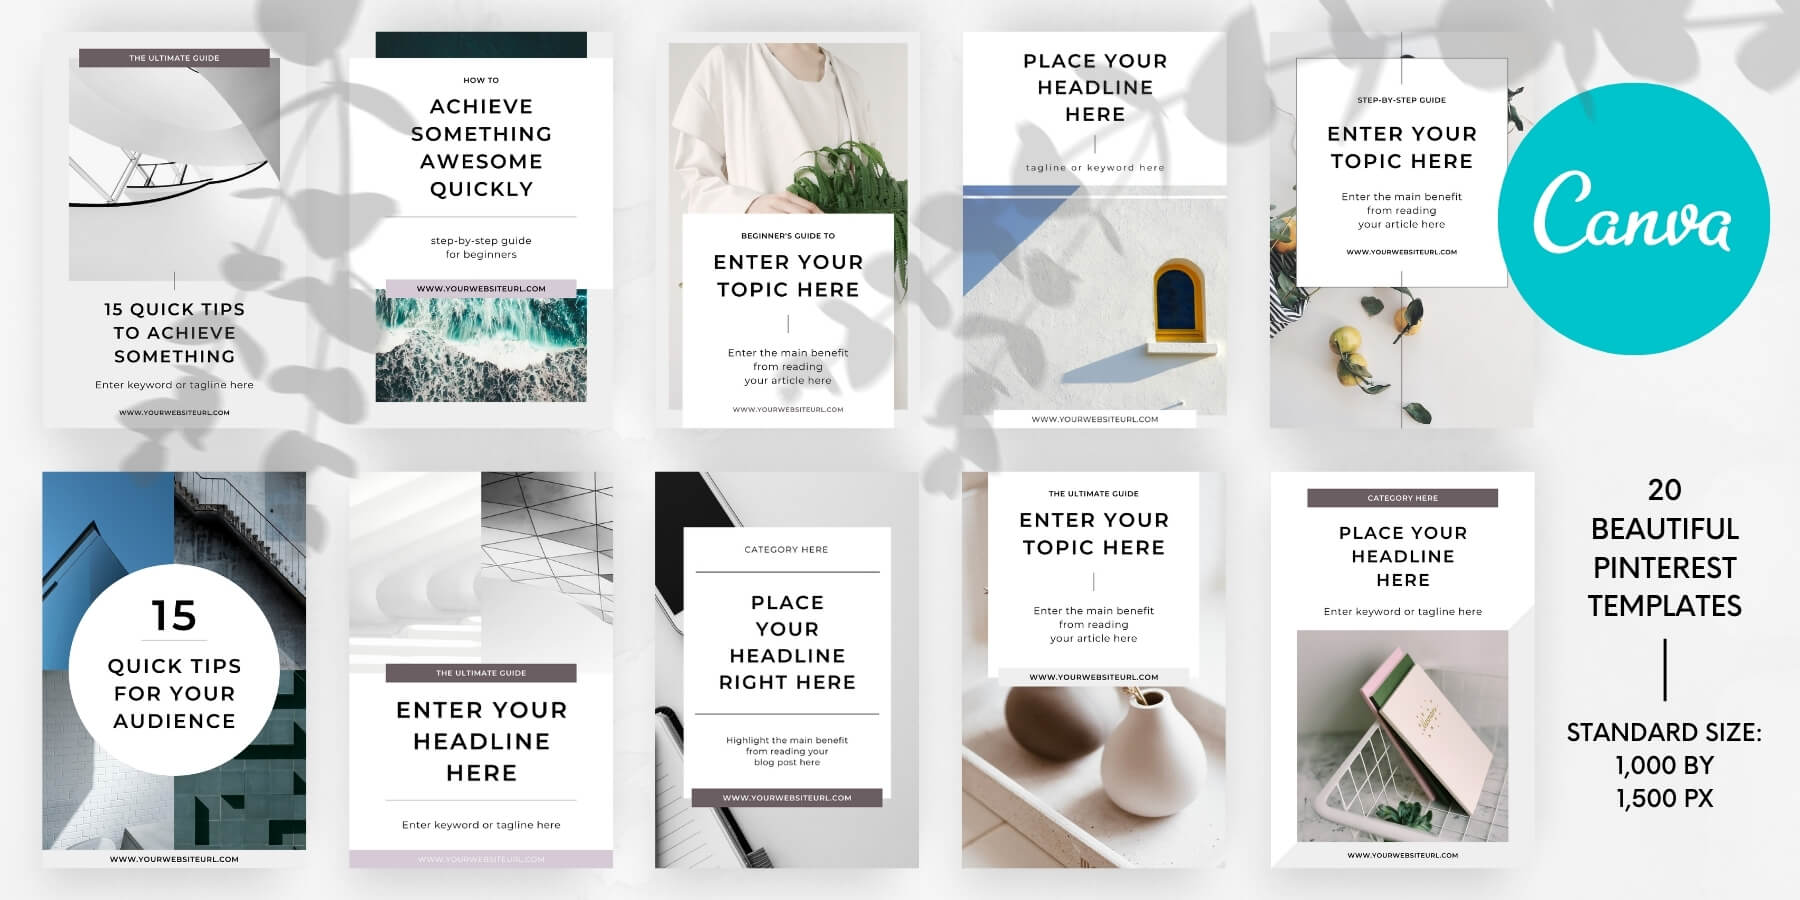 Minimal Canva Pinterest templates pack - Product specs